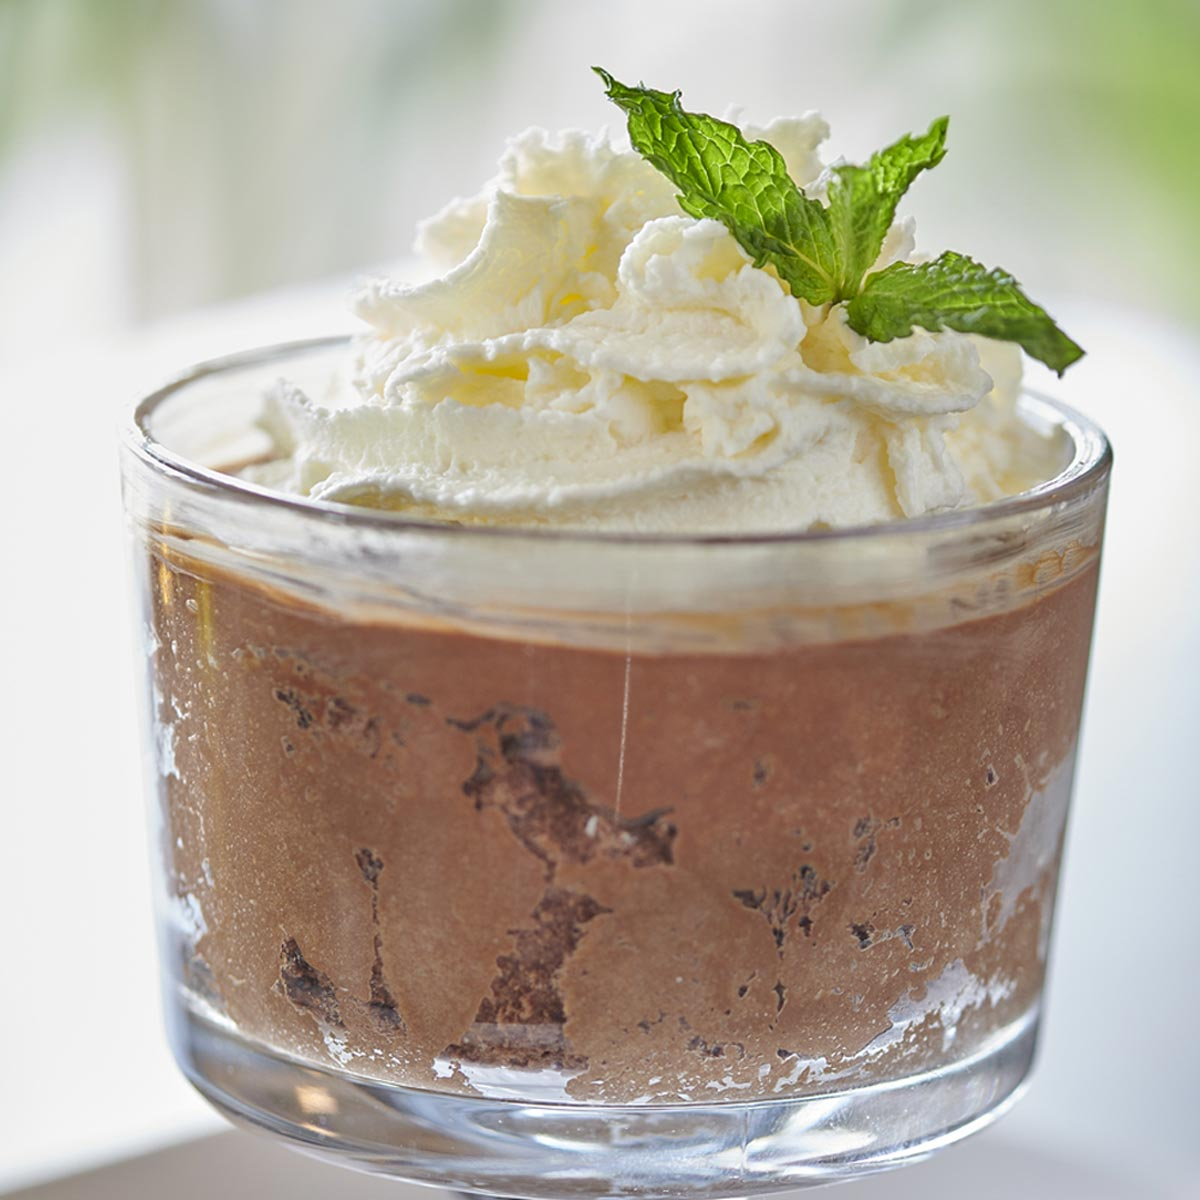 Mouthwatering Fresh Desserts Chocolate Mousse